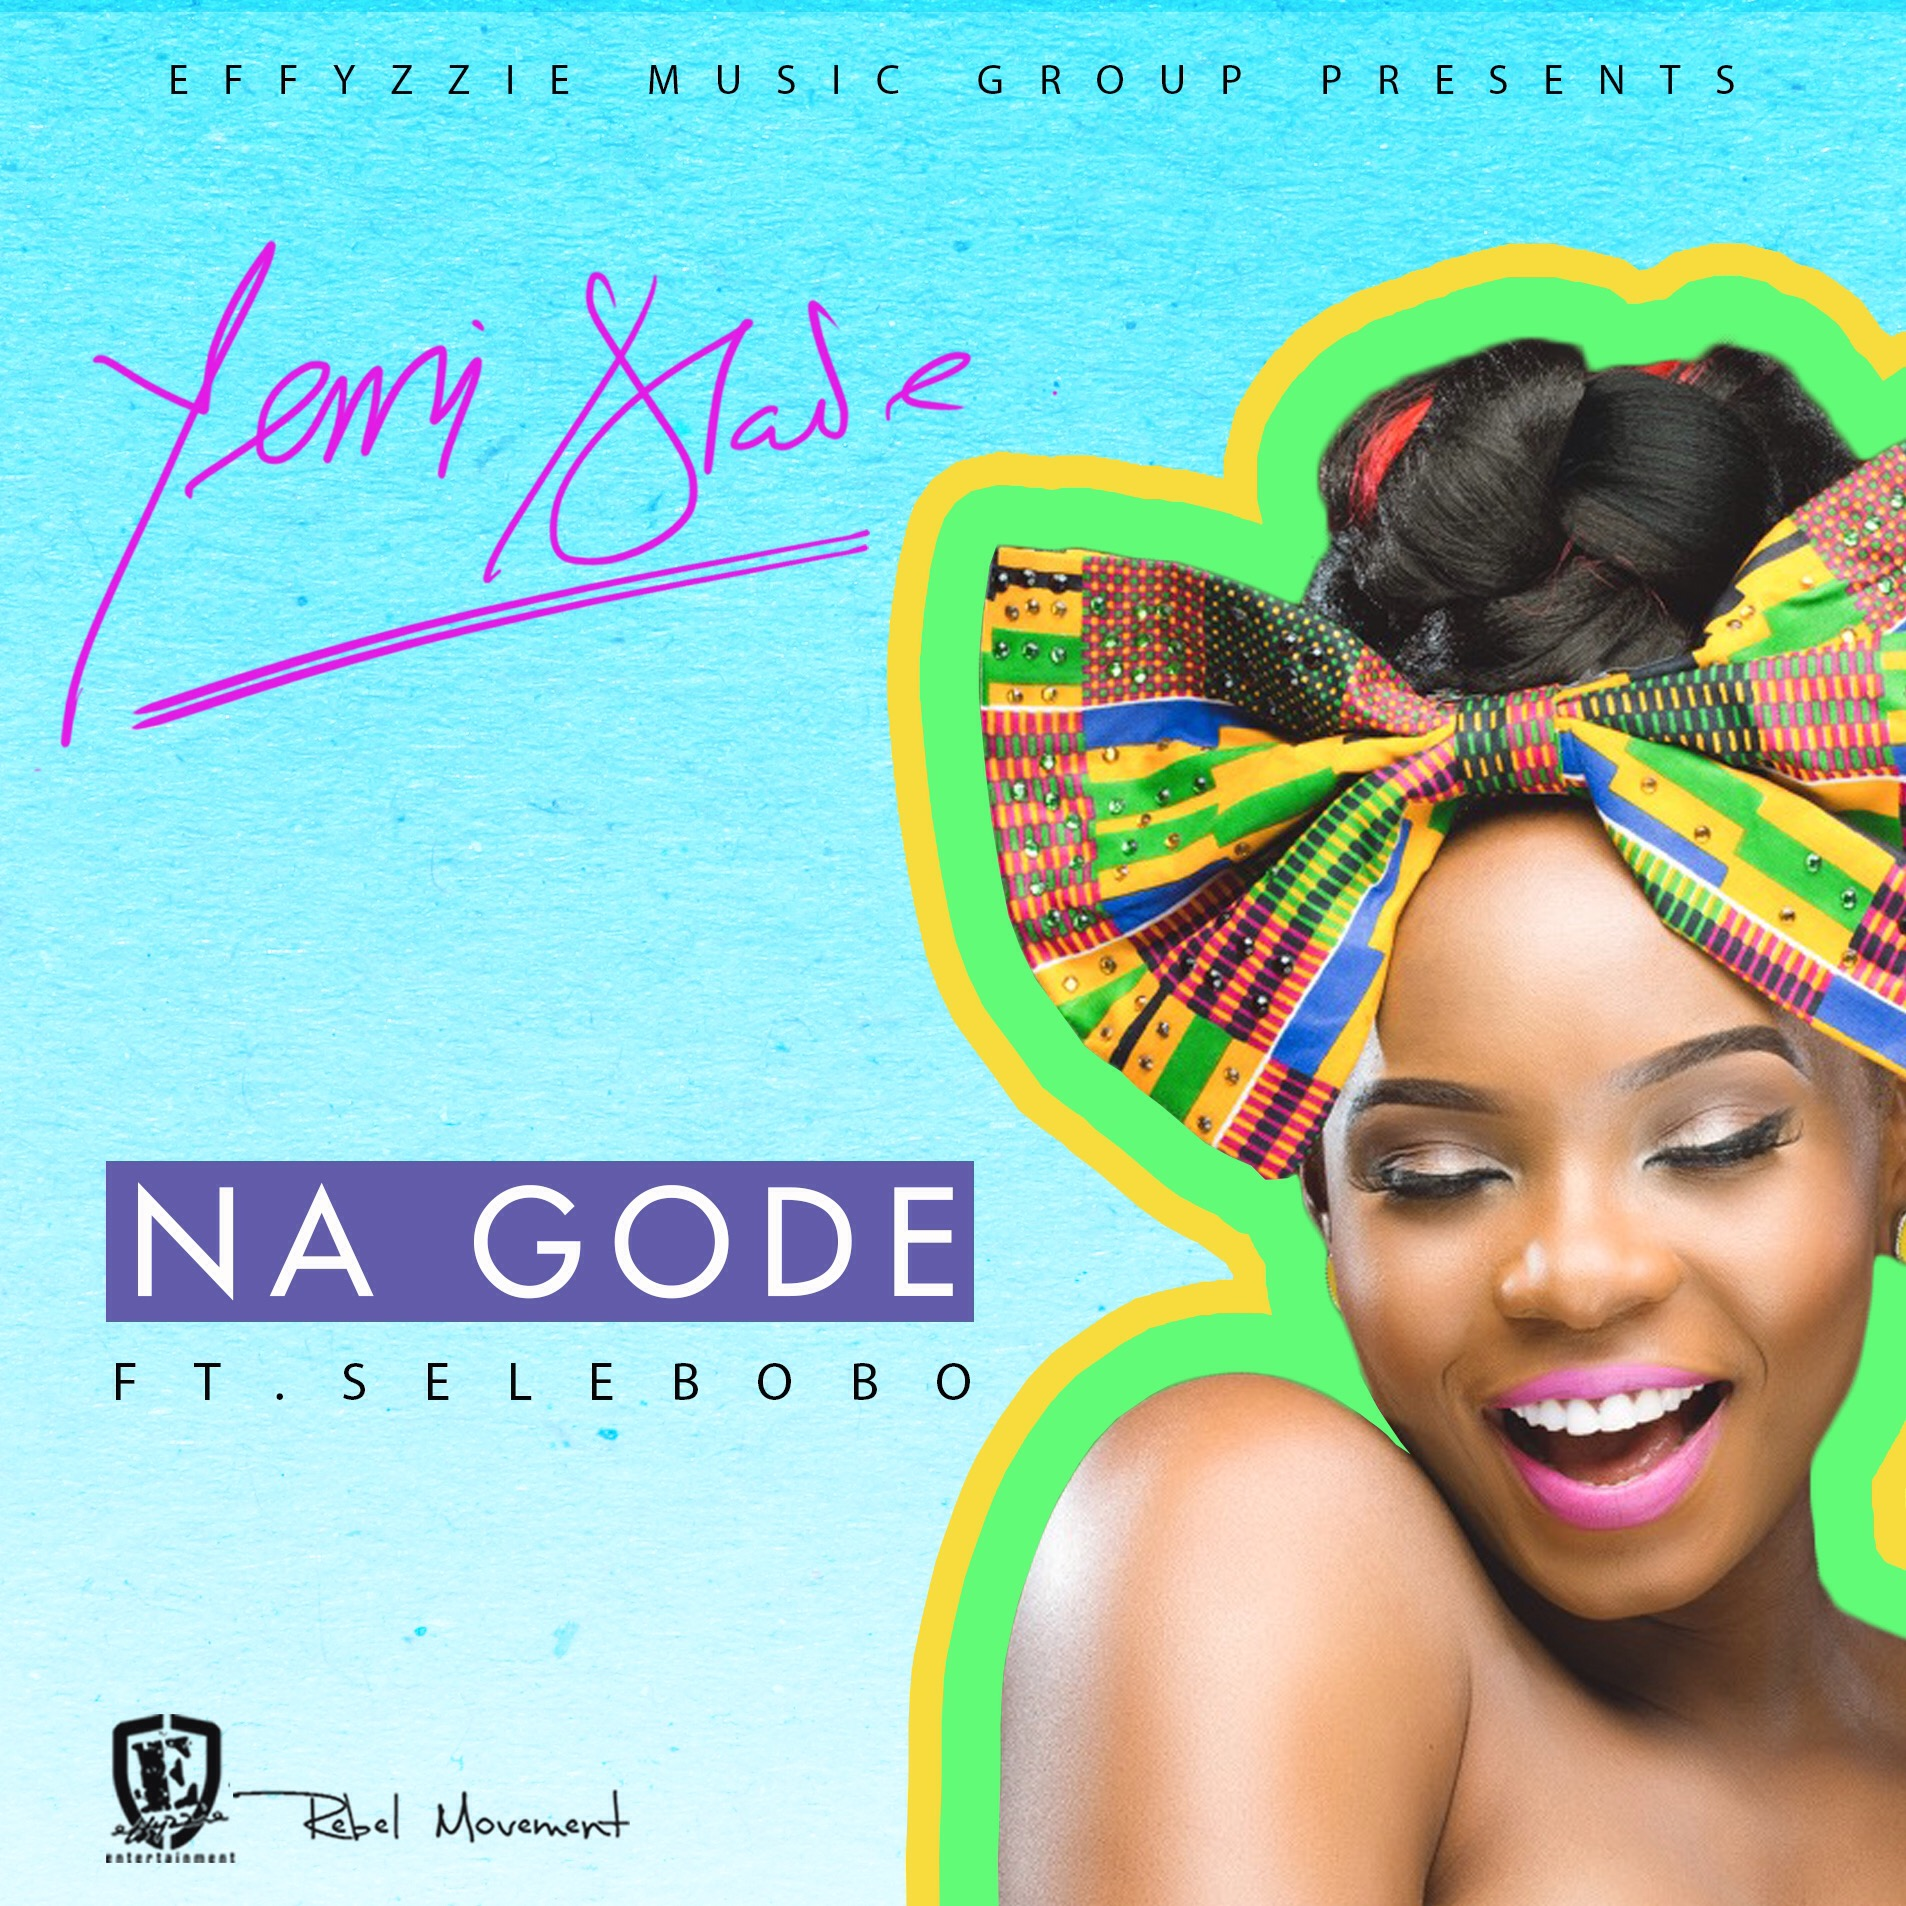 Yemi Alade - Na Gode [Single Art]